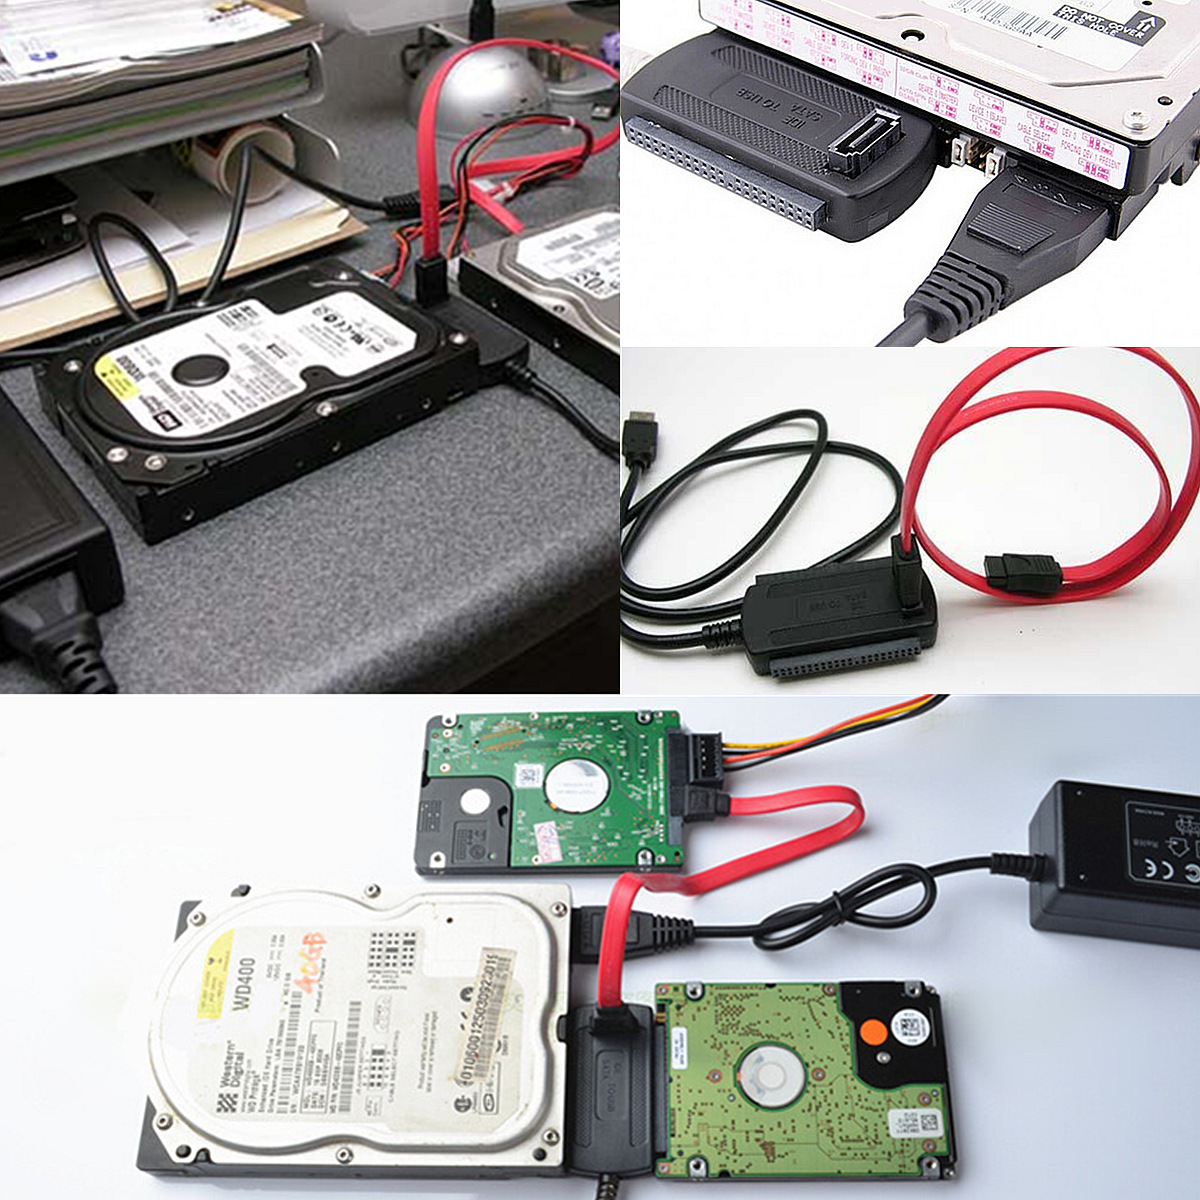 sabrent usb 2.0 to sata ide hard drive adapter instructions